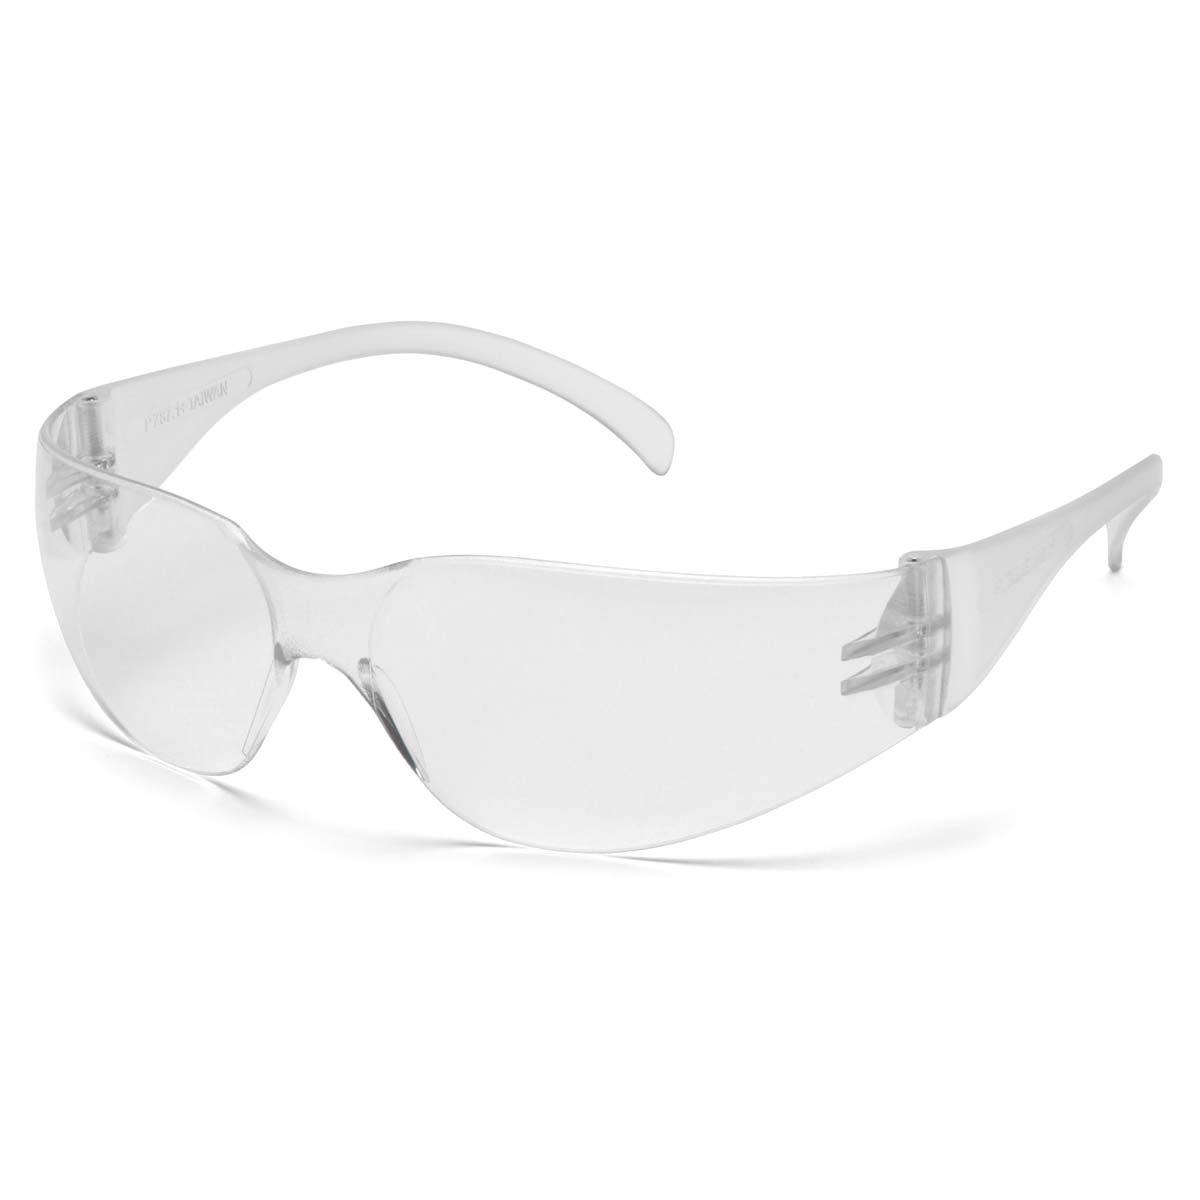 Clear Frame/Clear-Hardcoated Anti-fog Lens